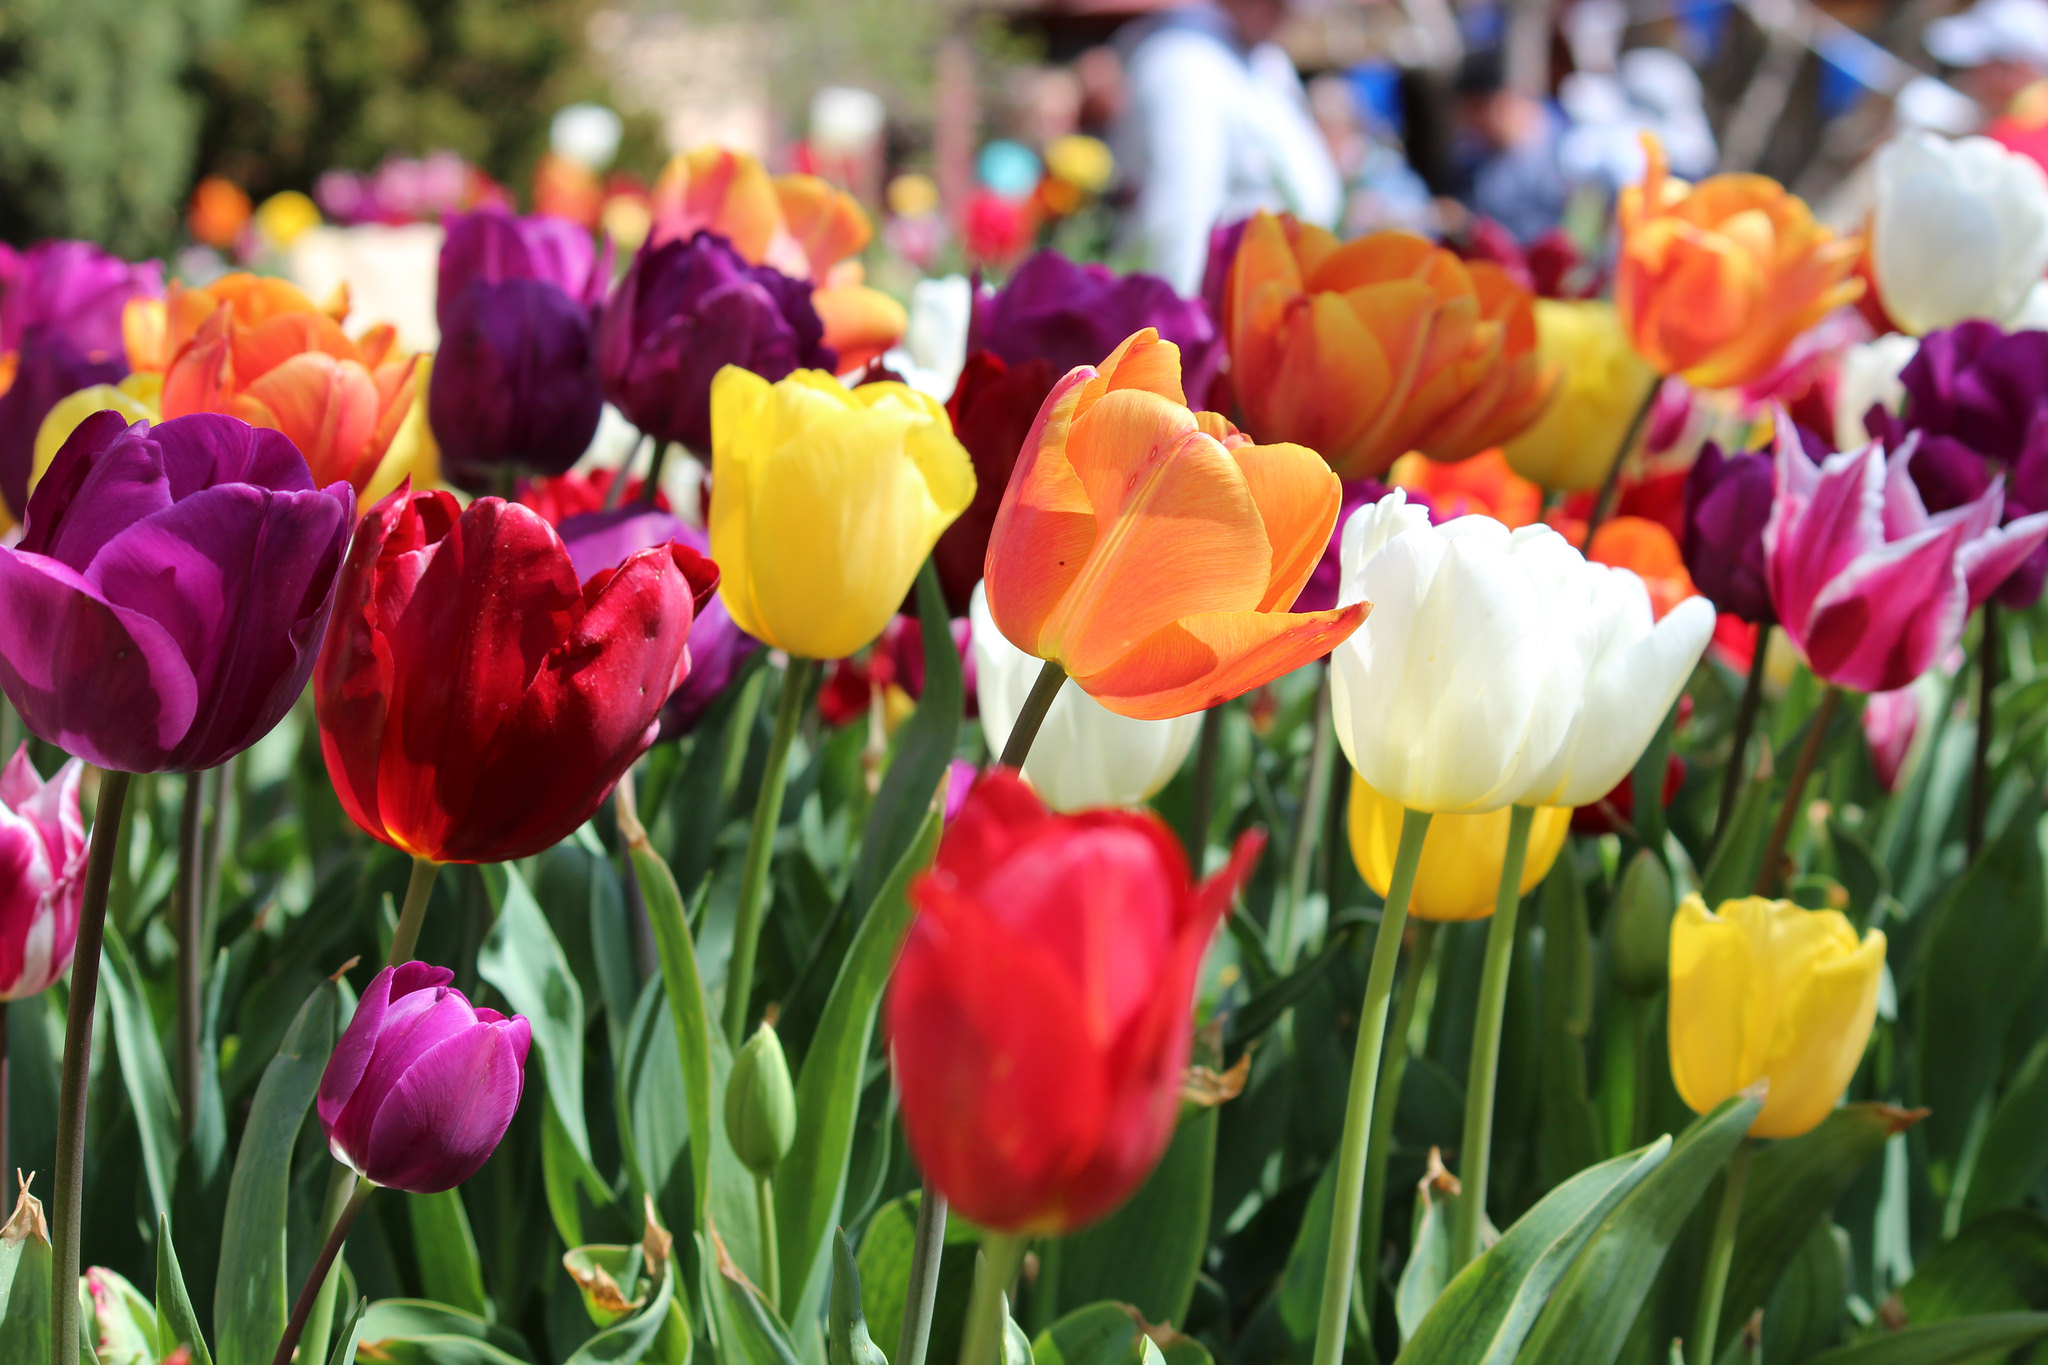 Council calls for 2018 Tulip Time charity partner